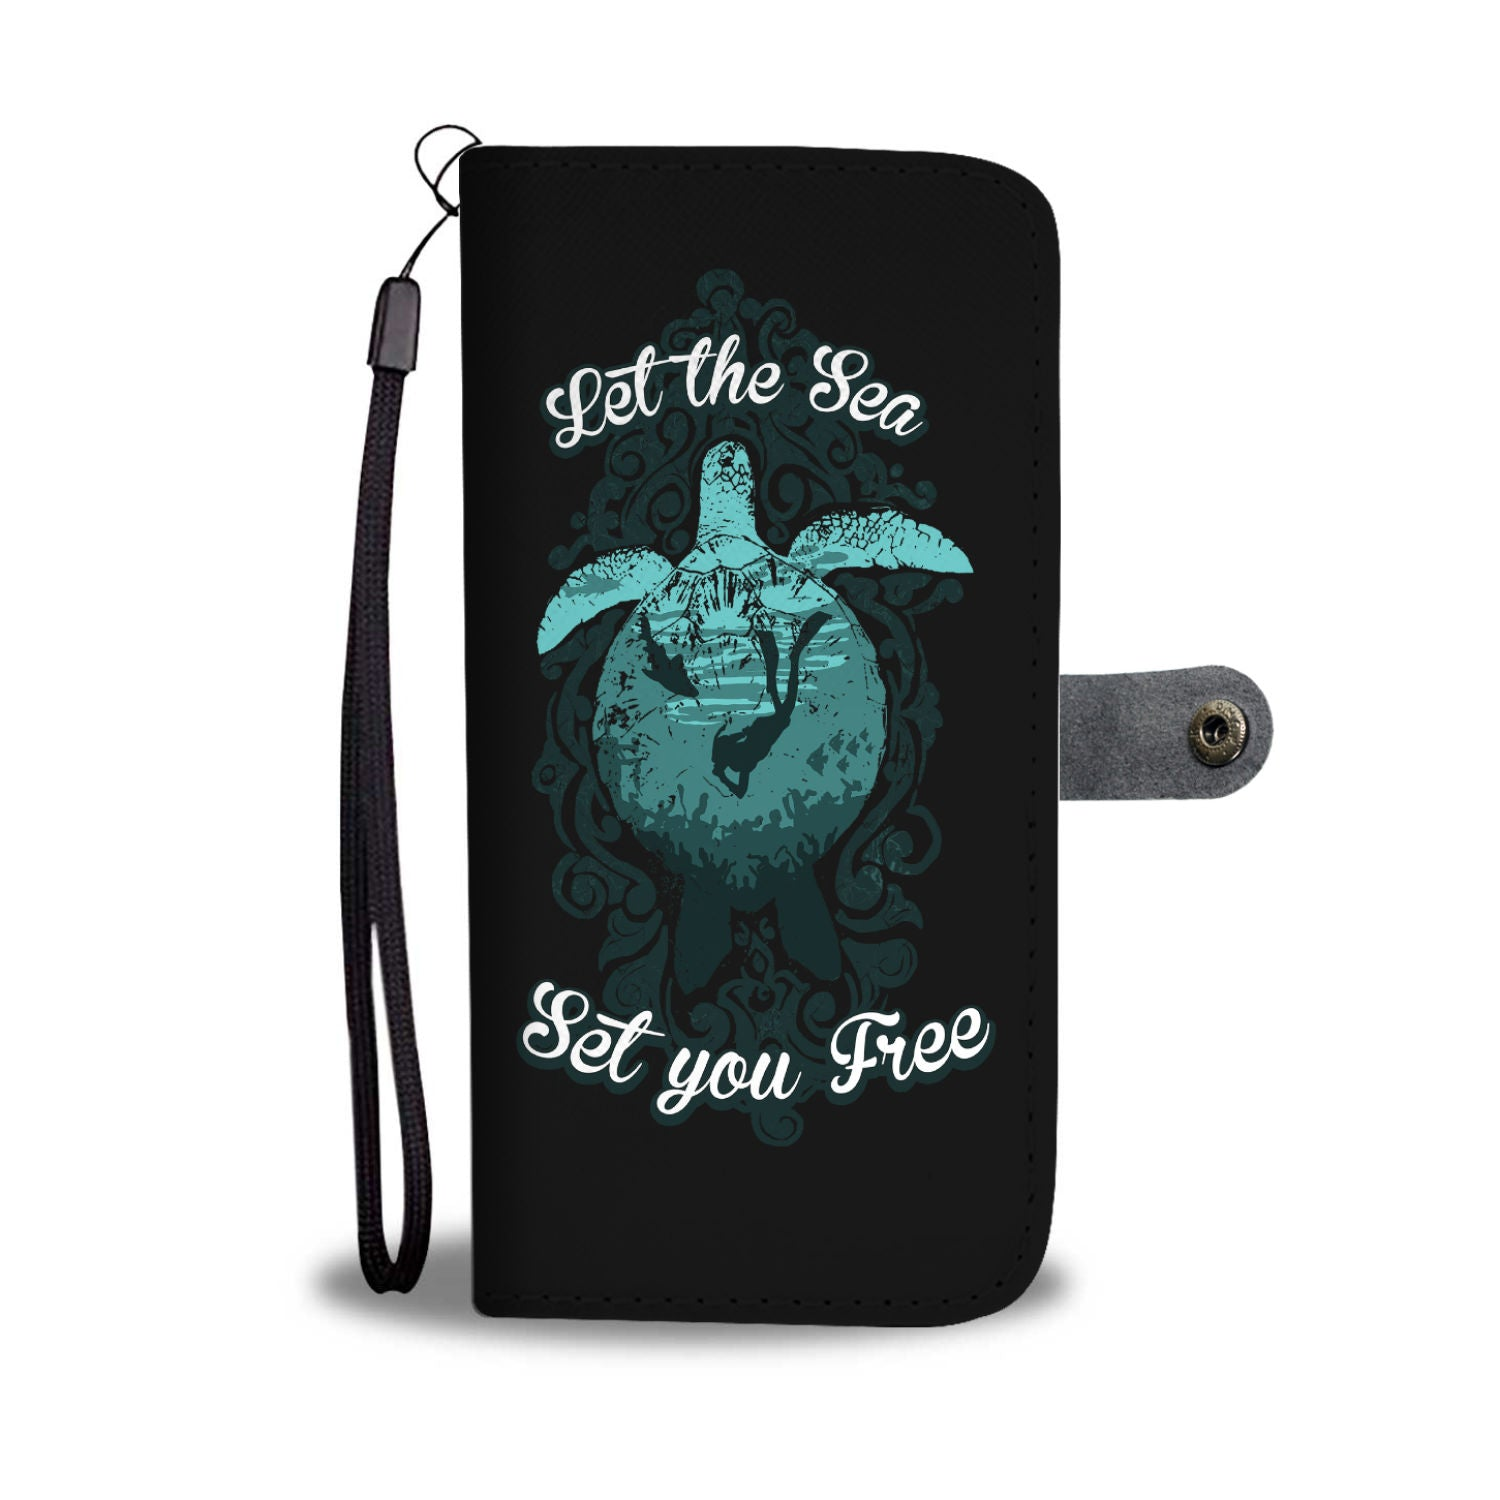 Let The Sea Set You Free Phone Case Wallet